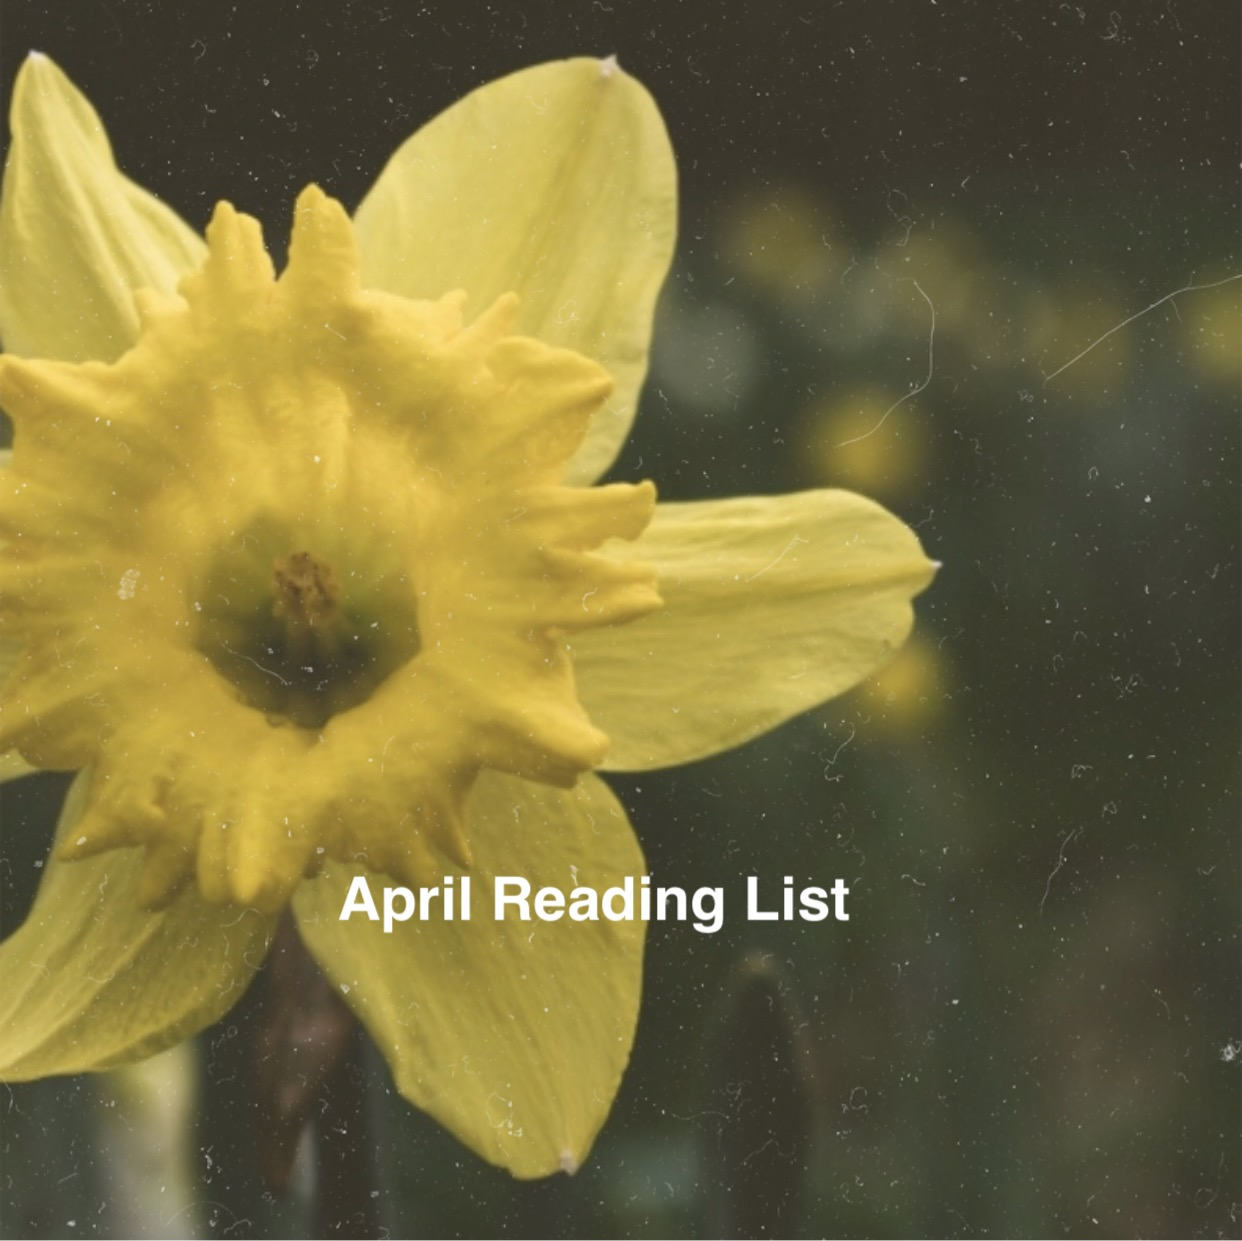 April Reading List